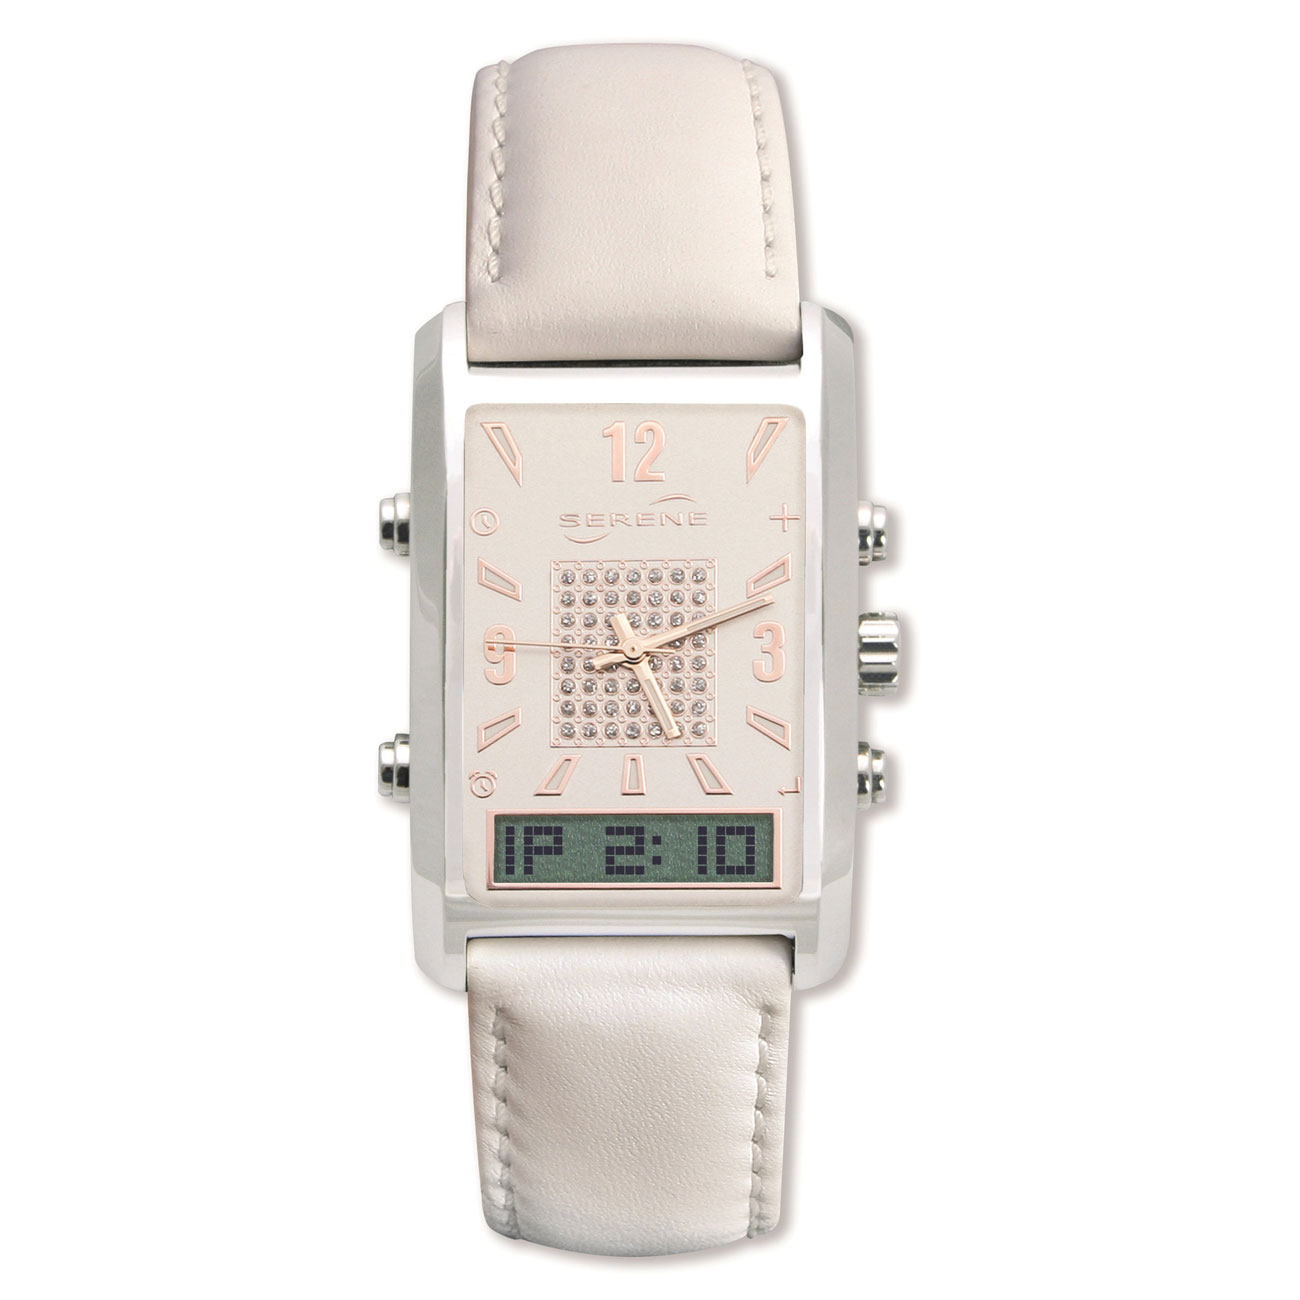 VibraQuartz Vibrating Watch for Women